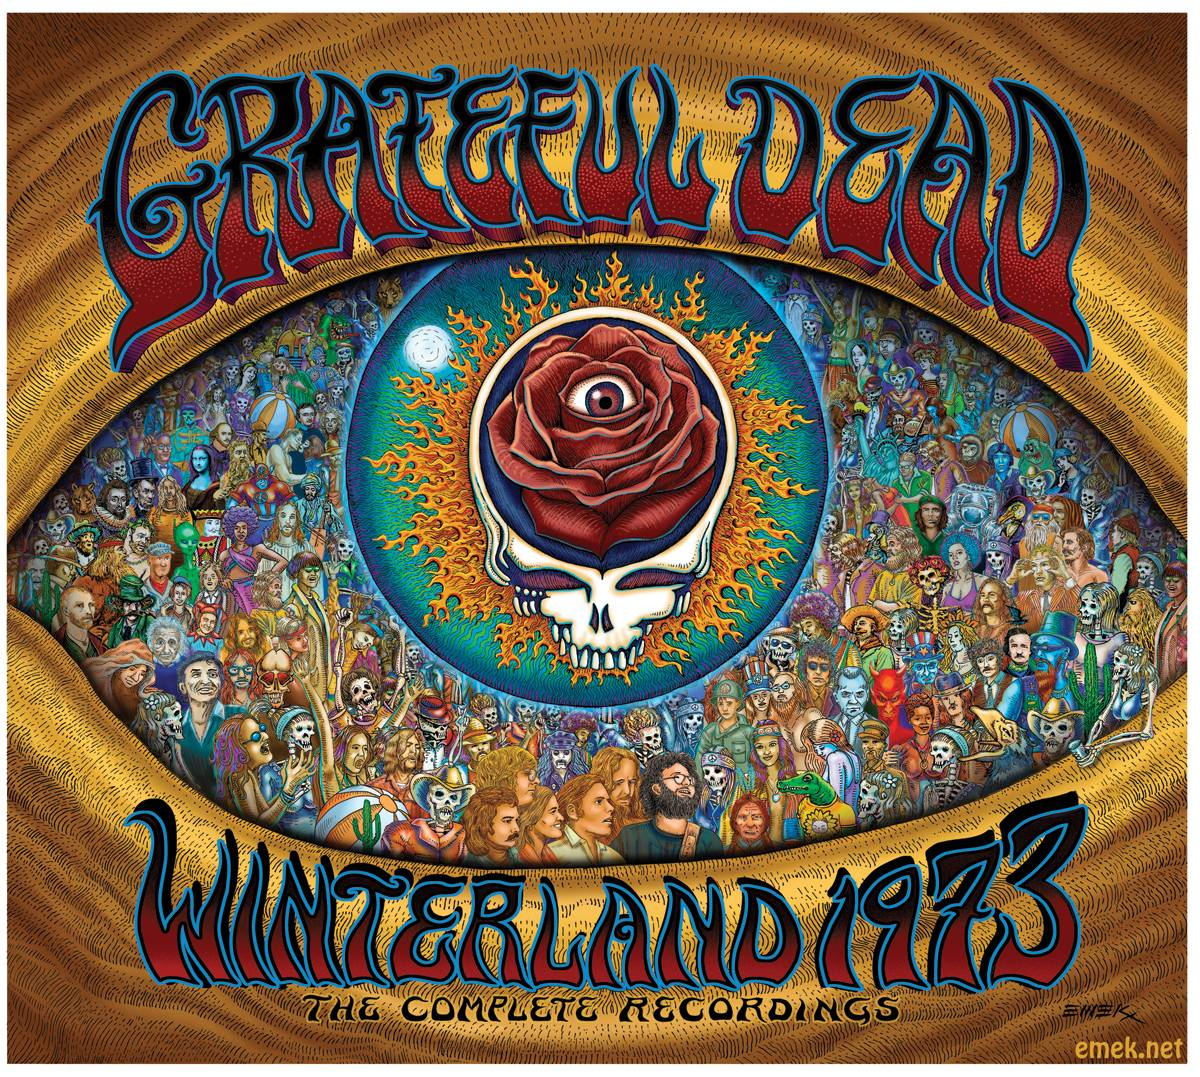 Image For > The Grateful Dead Album